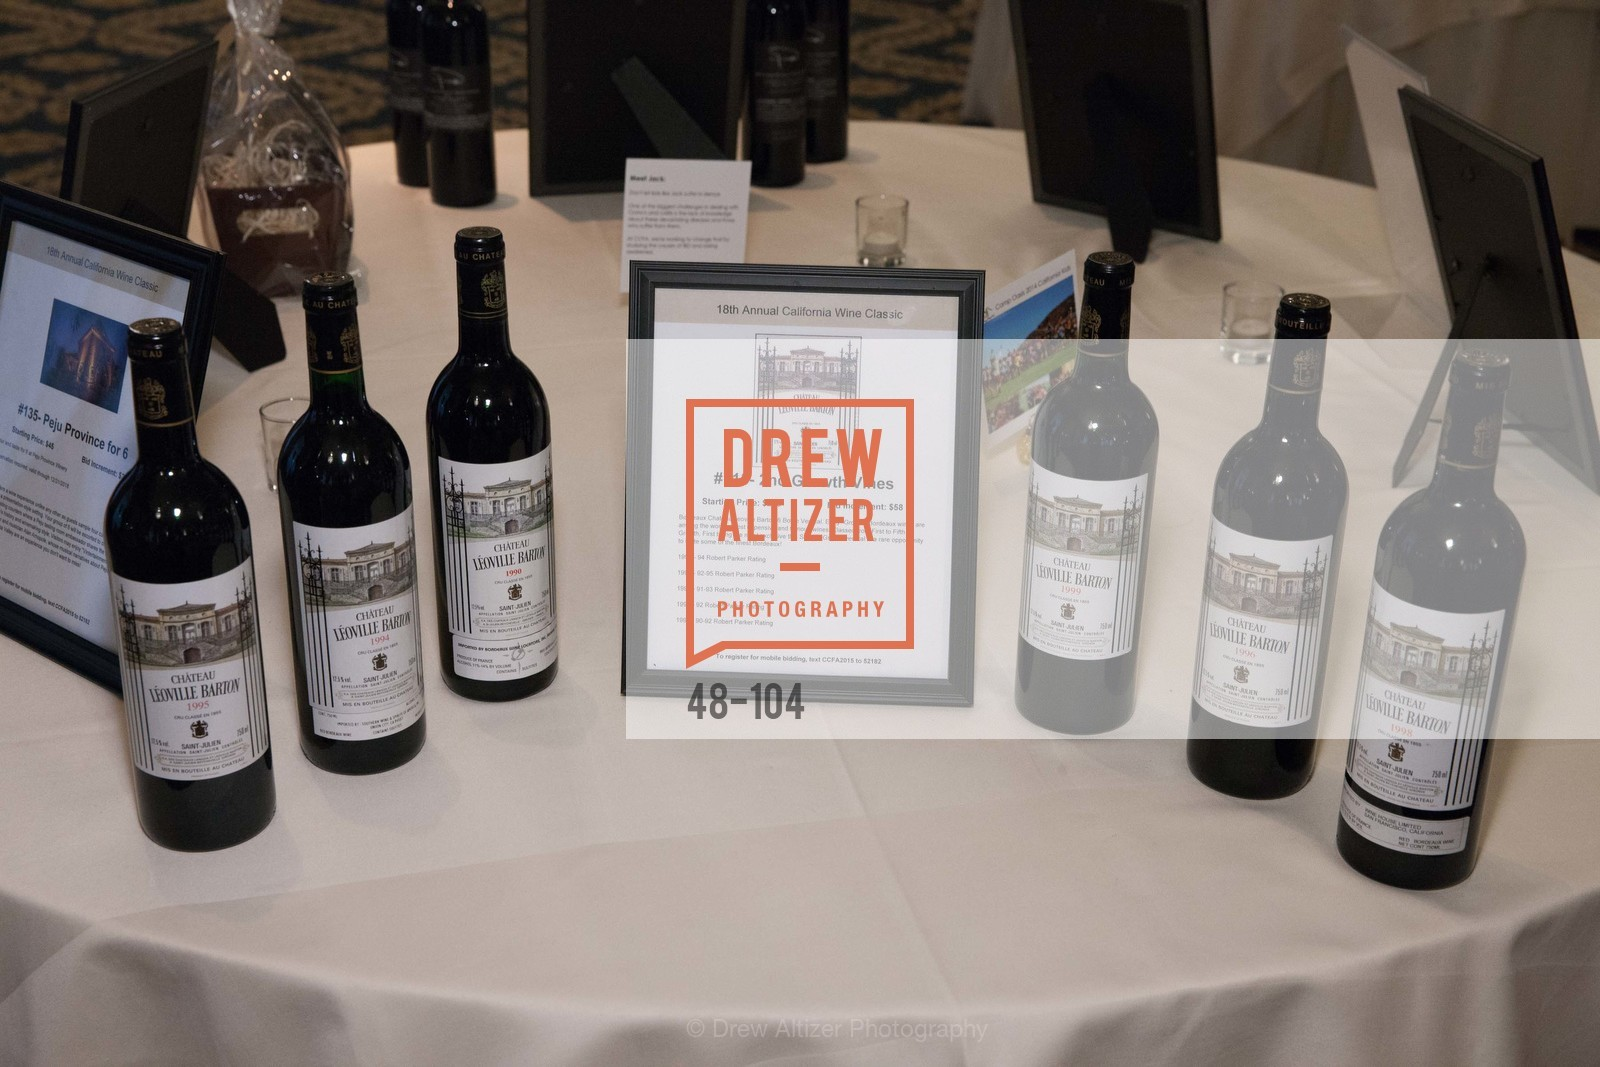 Atmosphere, 8th Annual California Wine Classic, May 14th, 2015, Photo,Drew Altizer, Drew Altizer Photography, full-service event agency, private events, San Francisco photographer, photographer California